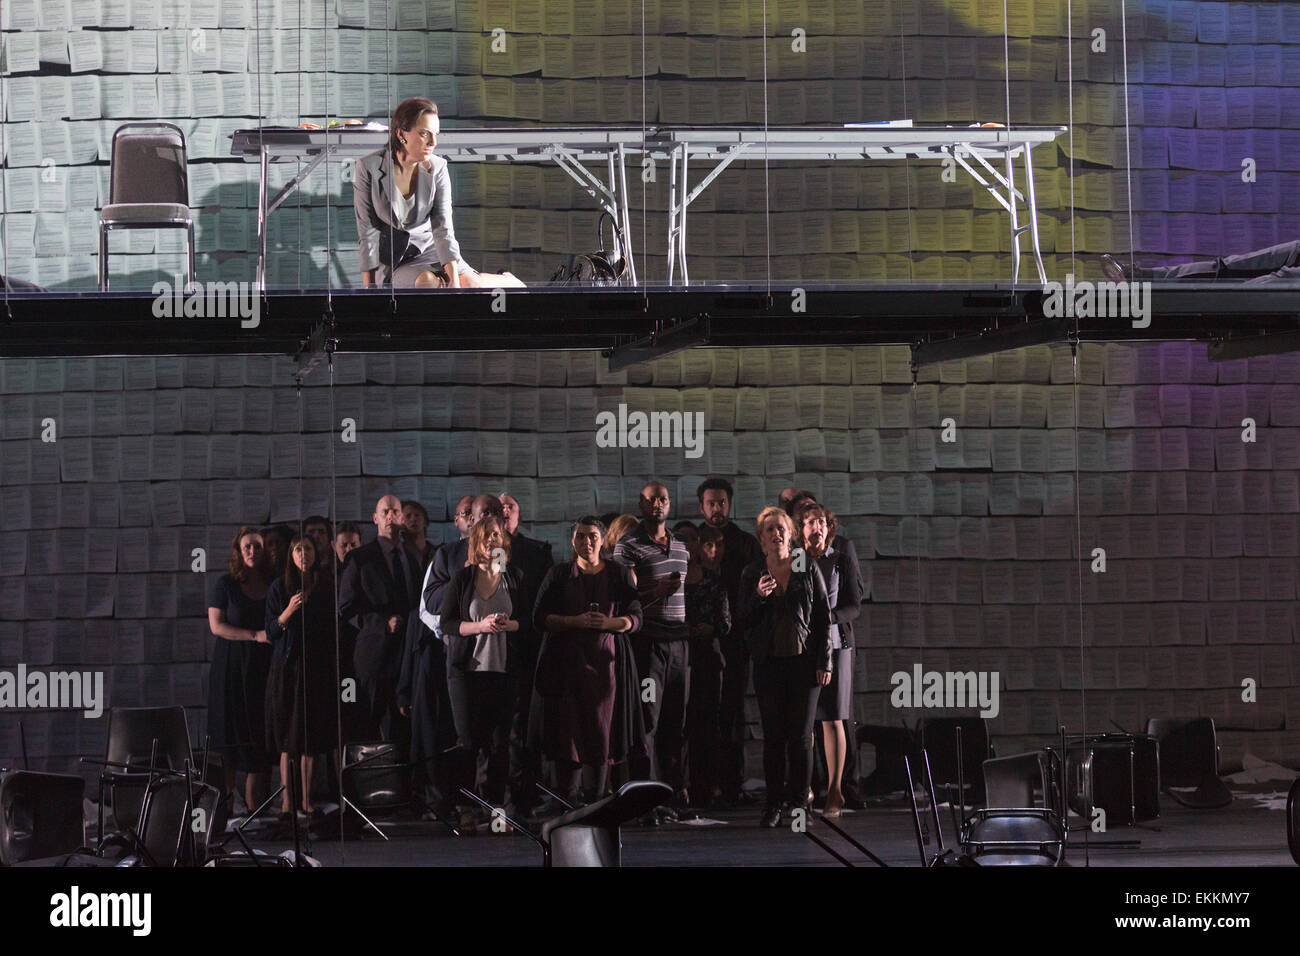 Clare Presland as Realtor at the top. Deborah Warner directs the world premiere of Tansy Davies's first opera - Stock Image